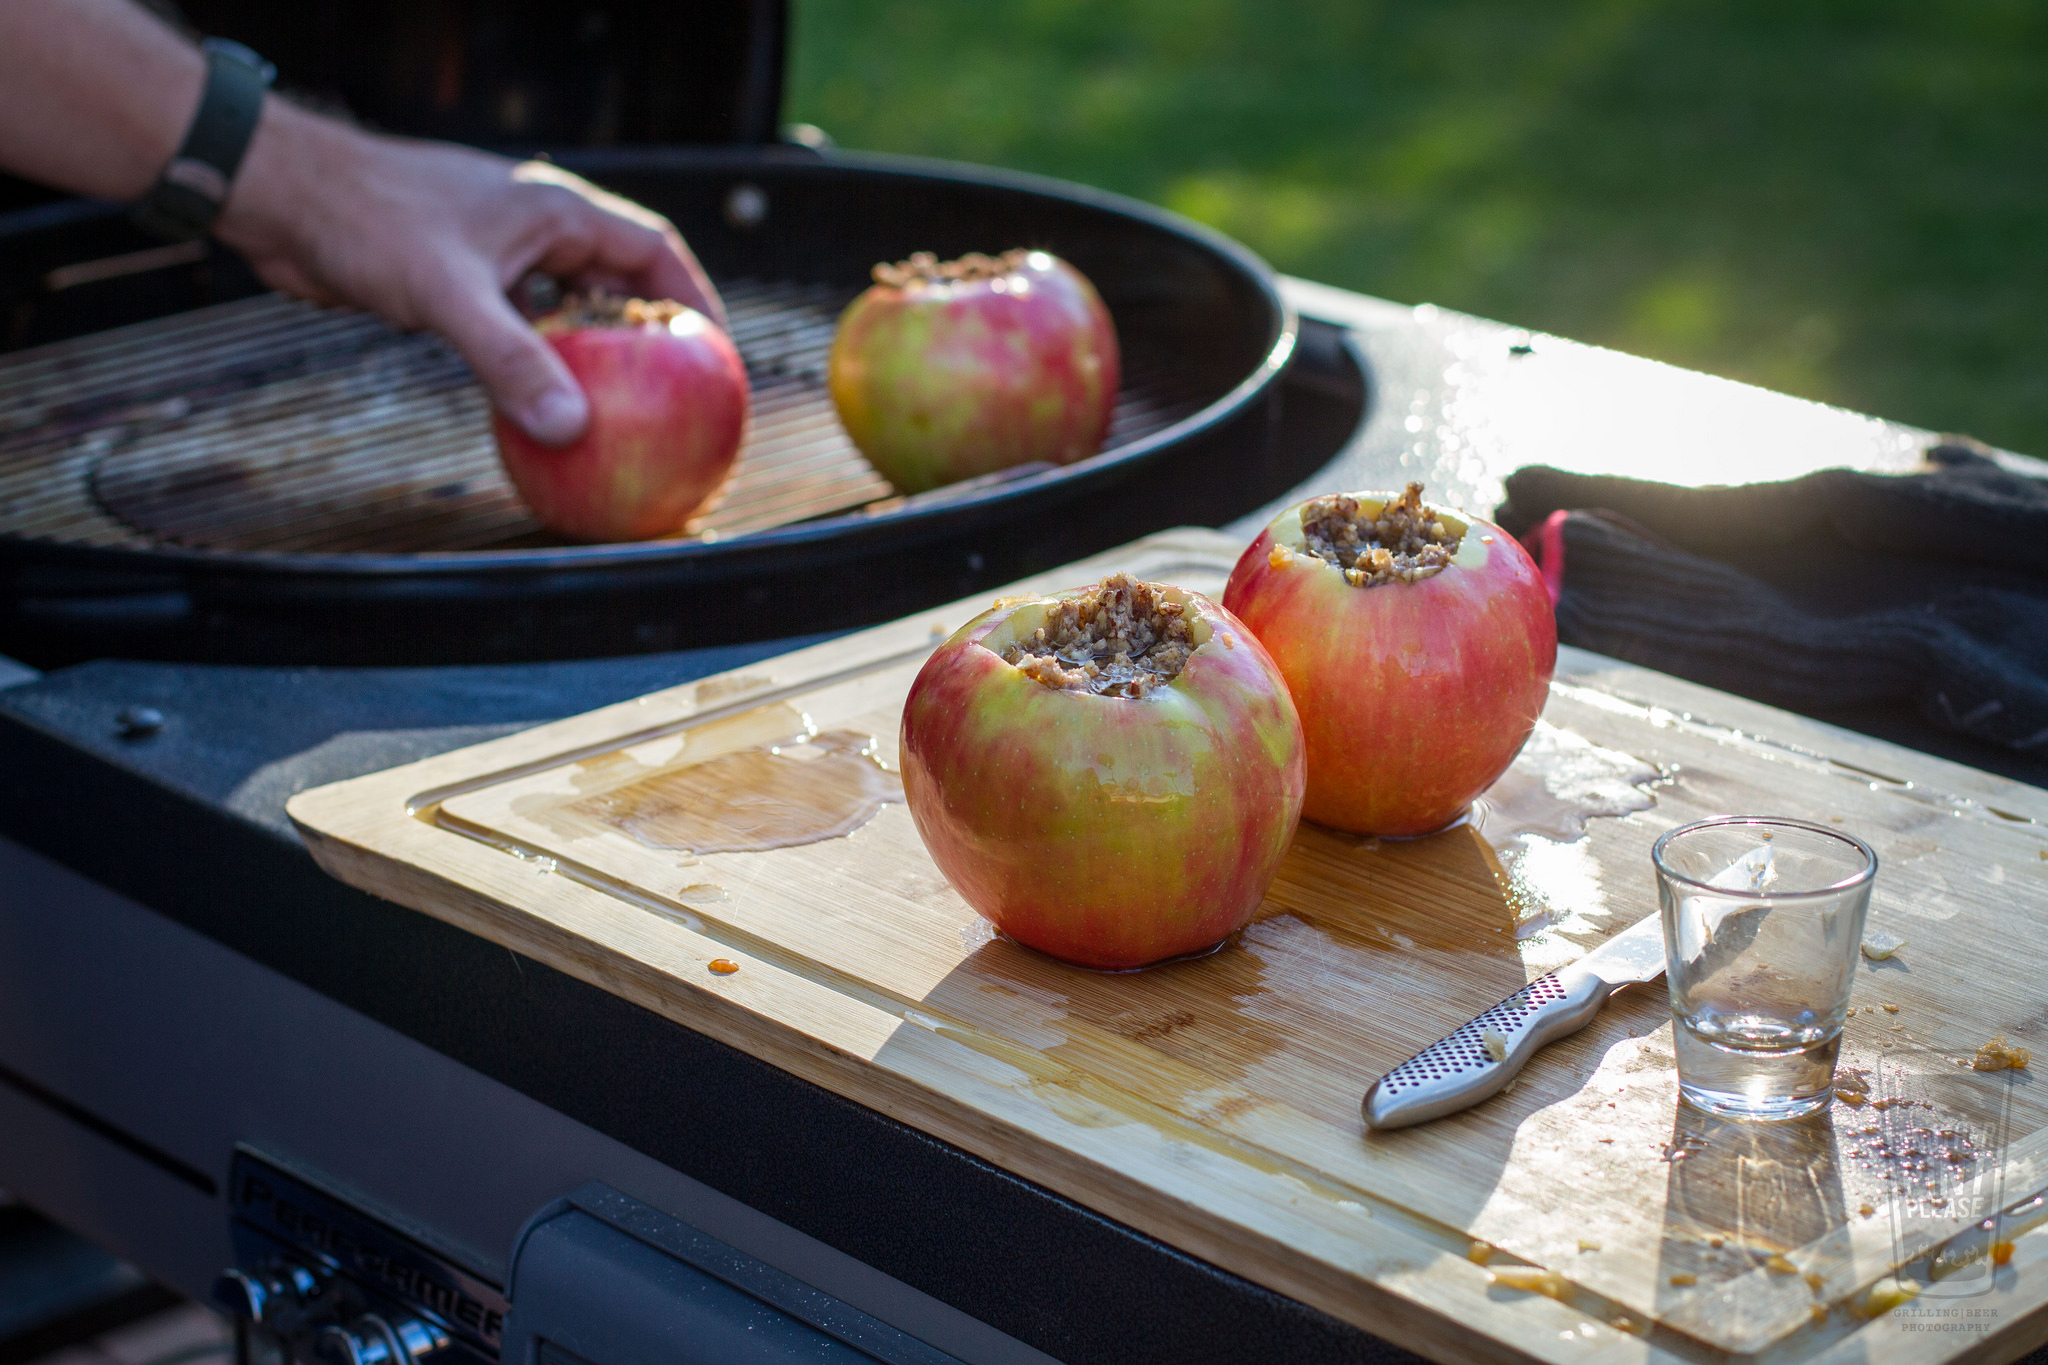 placing apples on weber grill.jpg